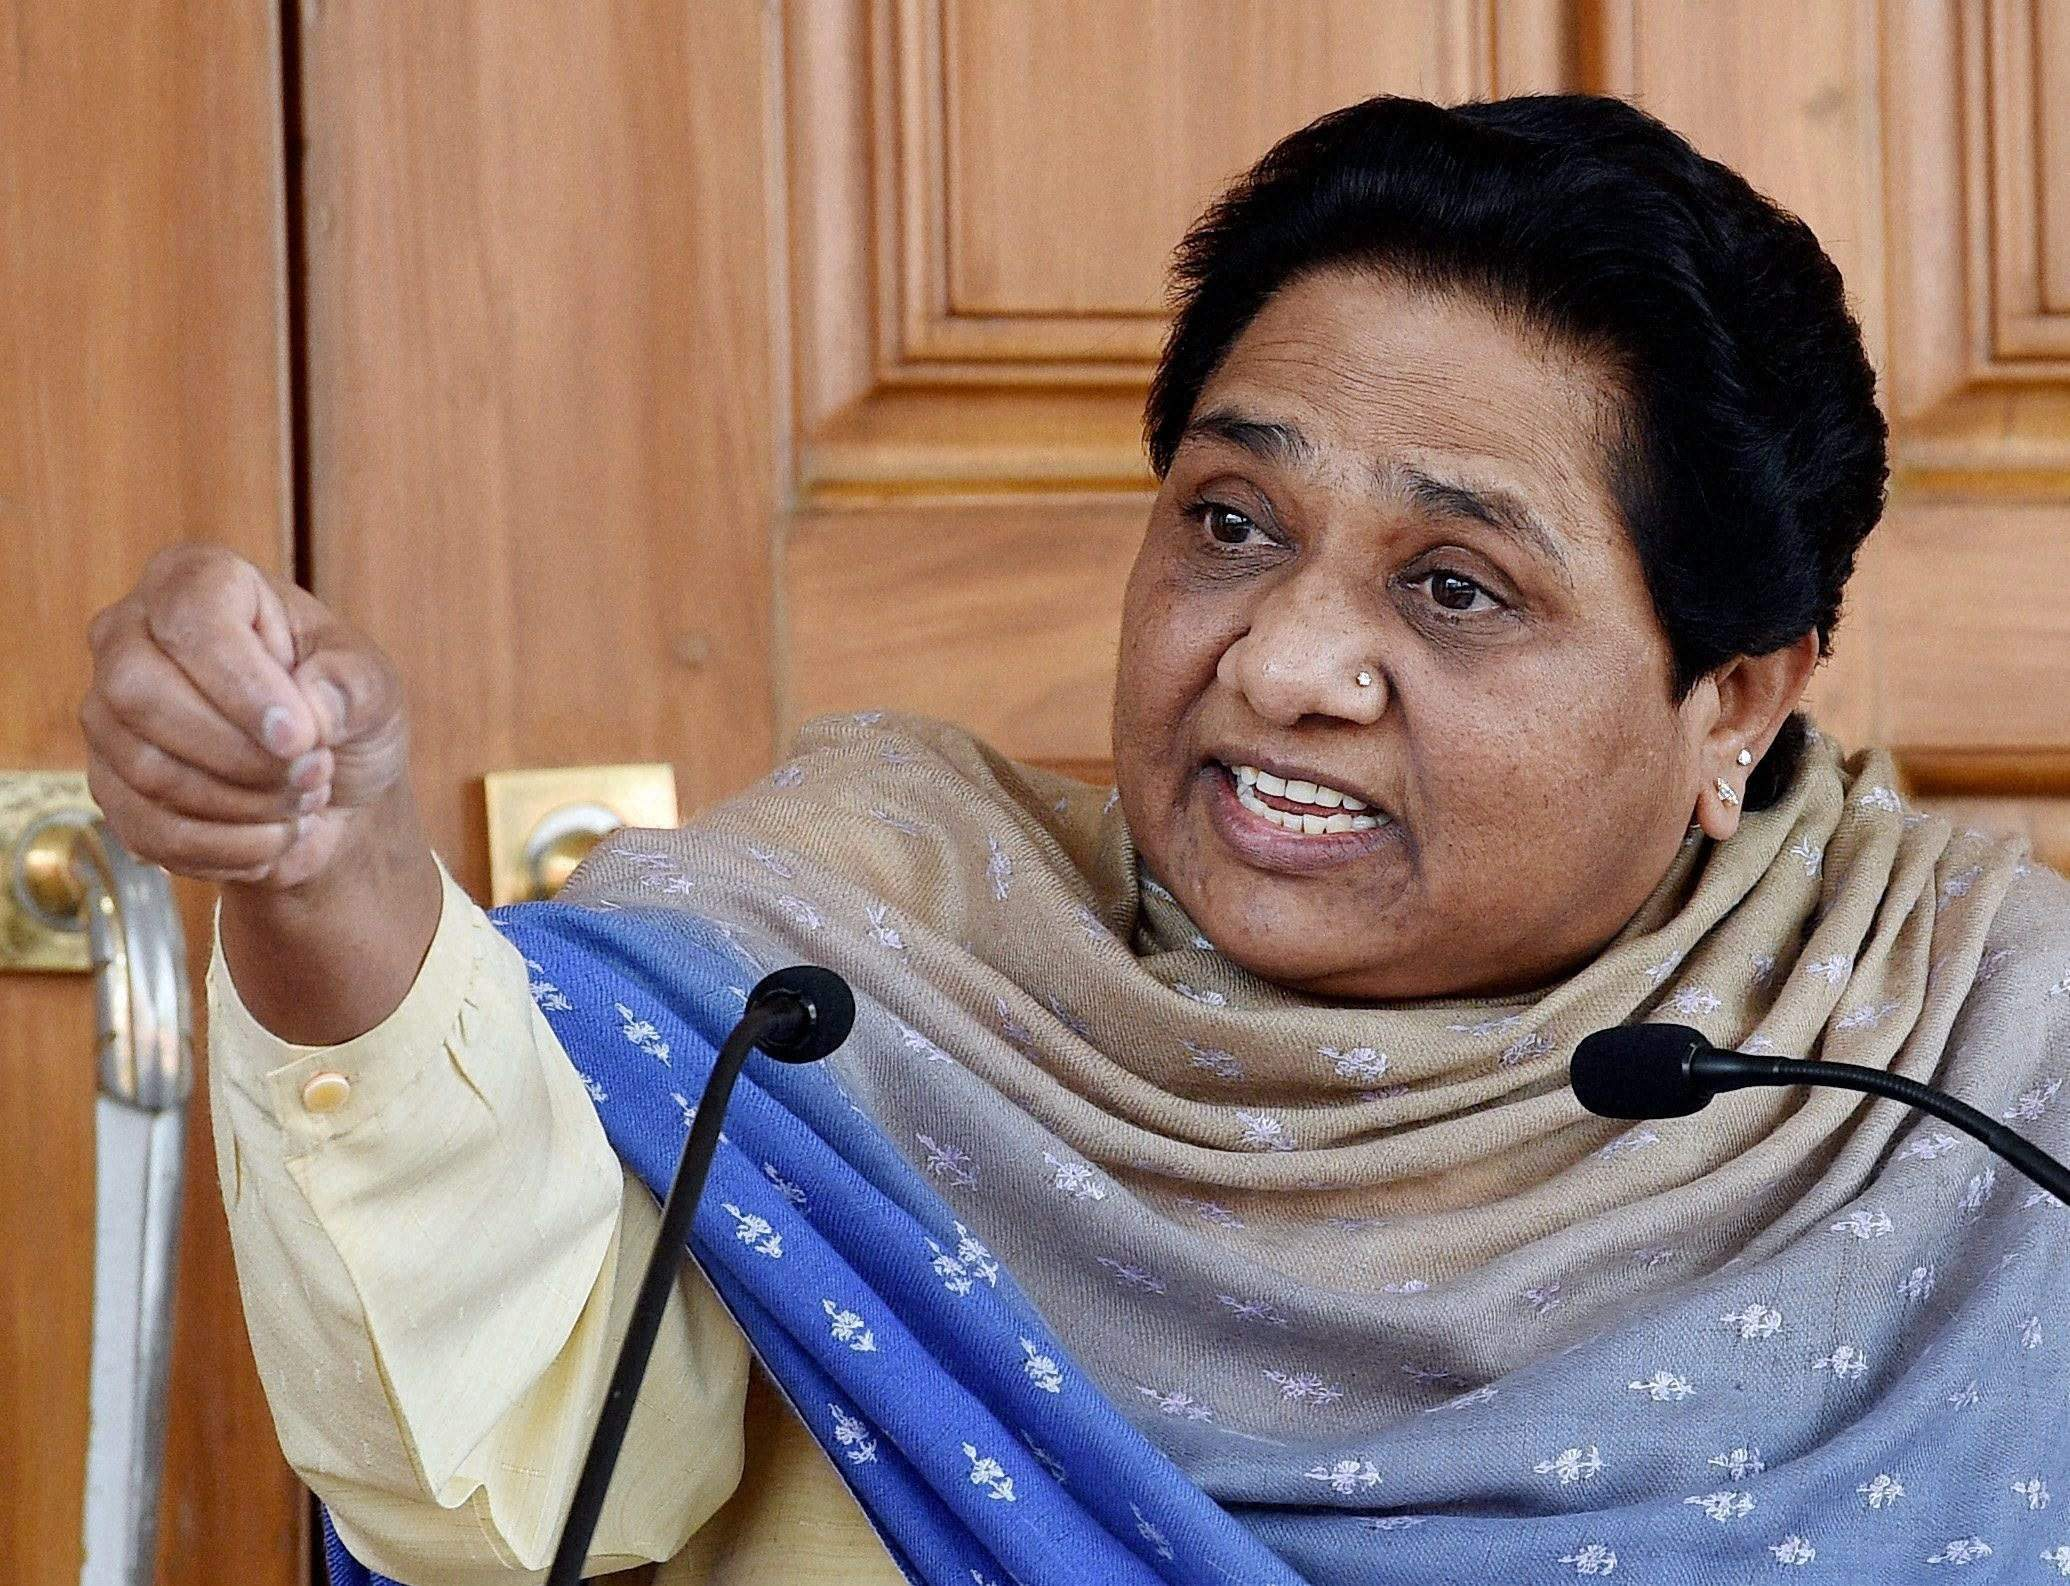 BSP leader Mayawati has alleged that the EVM machines have registered only BJP votes and demanded a re-election. Credit: PTI/Files